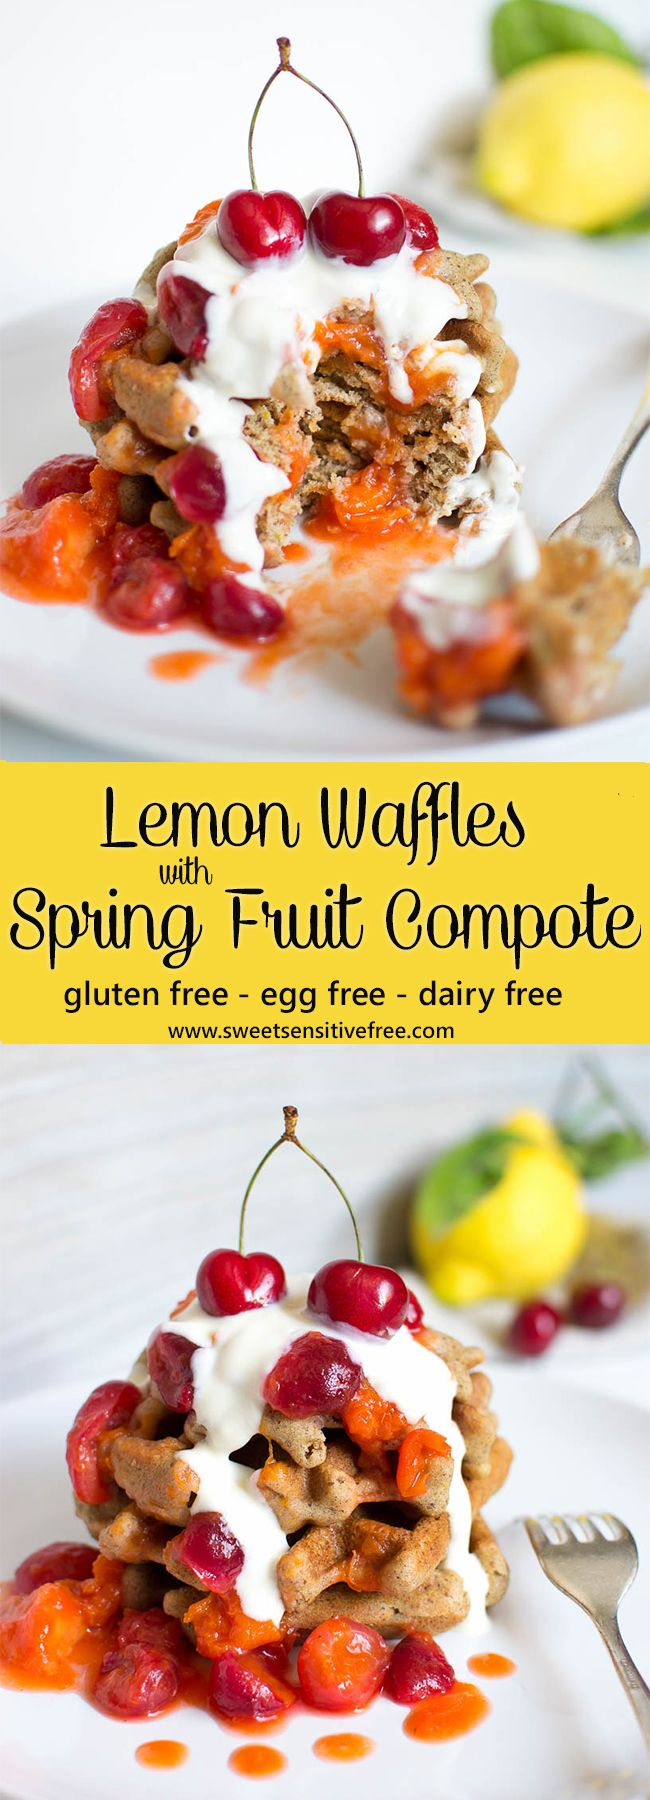 Gluten free vegan lemon waffles topped with a quick and easy Spring fruit compote and some yogurt, a great way to enjoy peaches, apricots and cherries